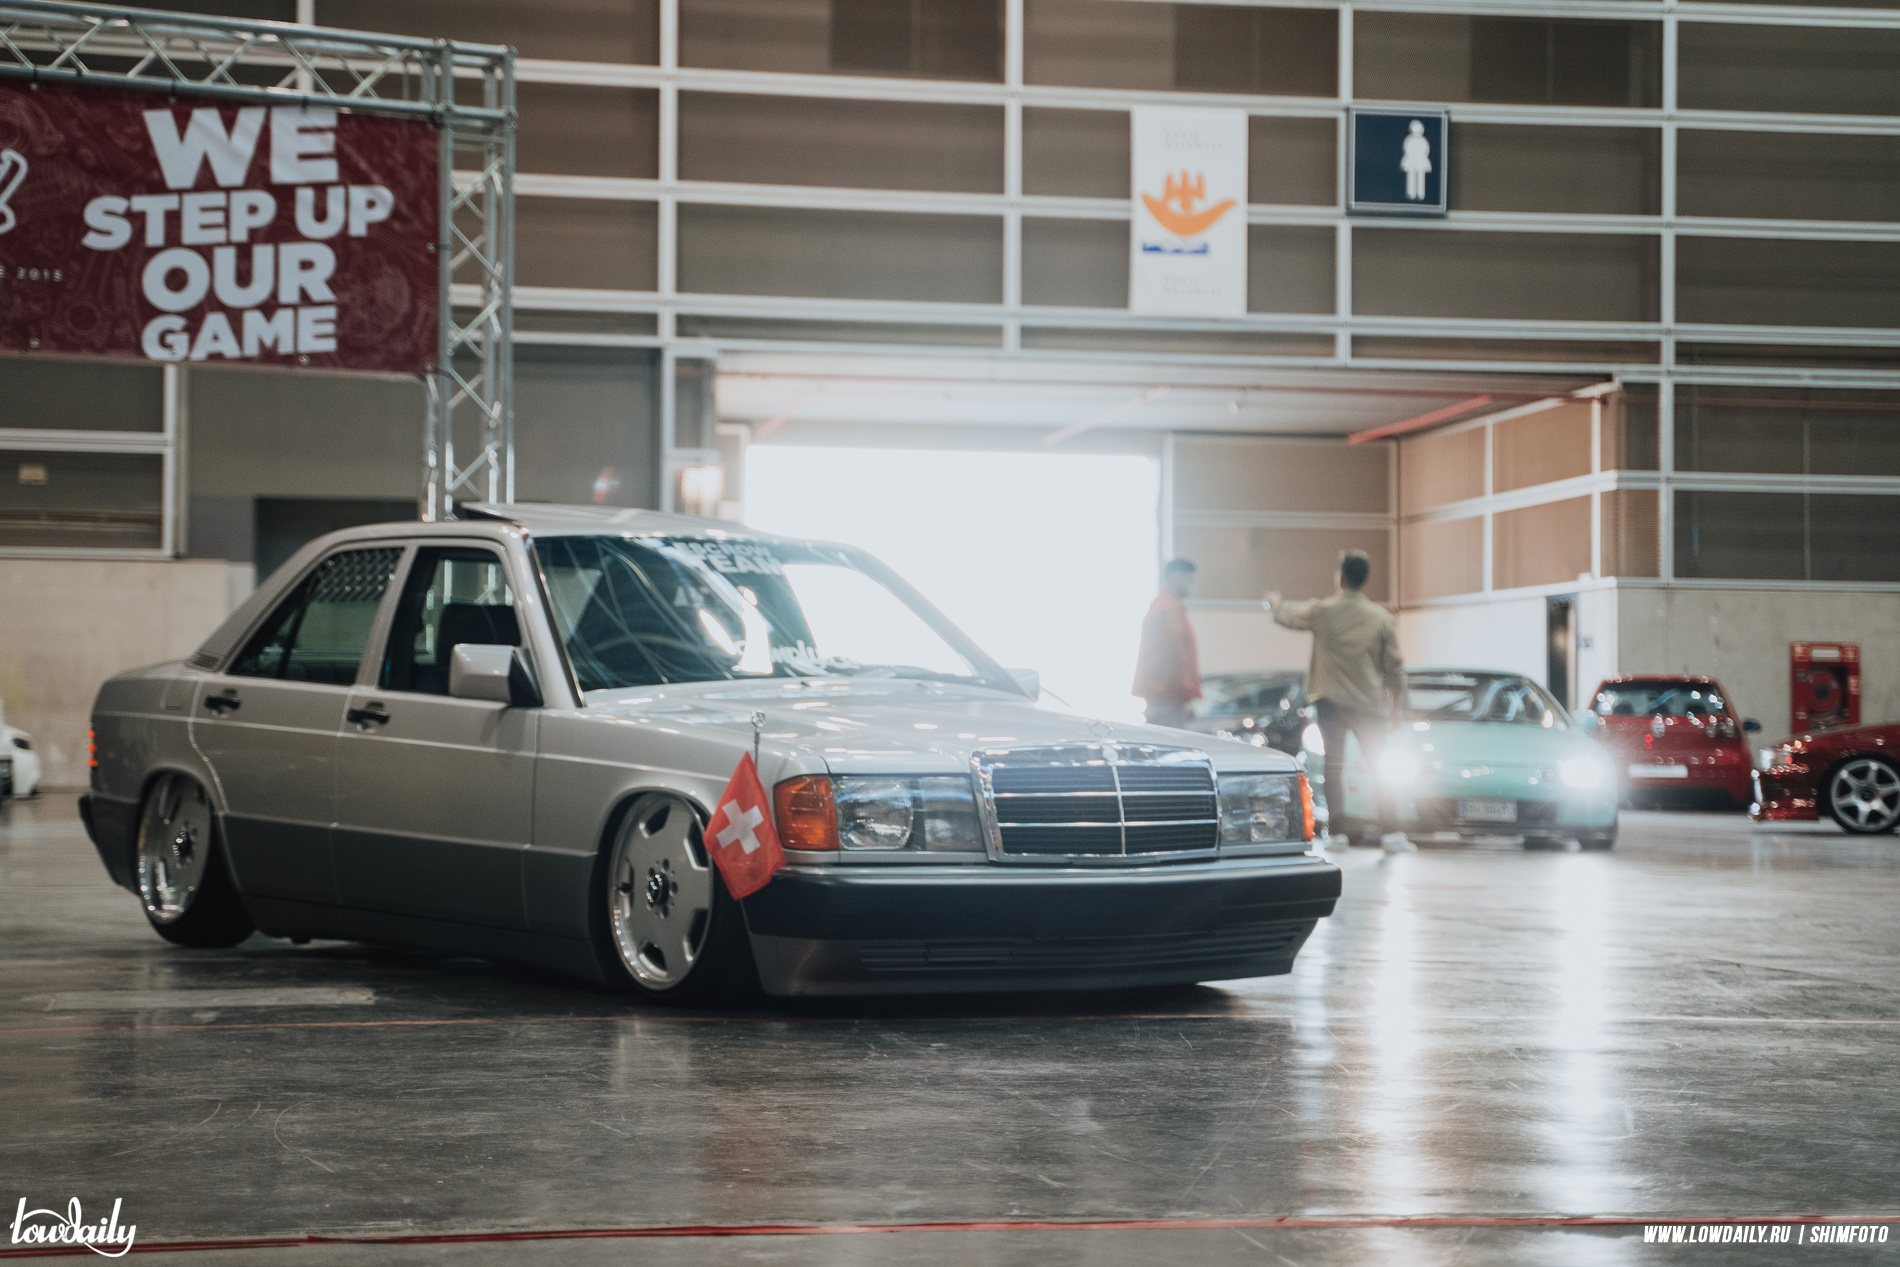 EuroCrewSpain - Stance Weekend 2019